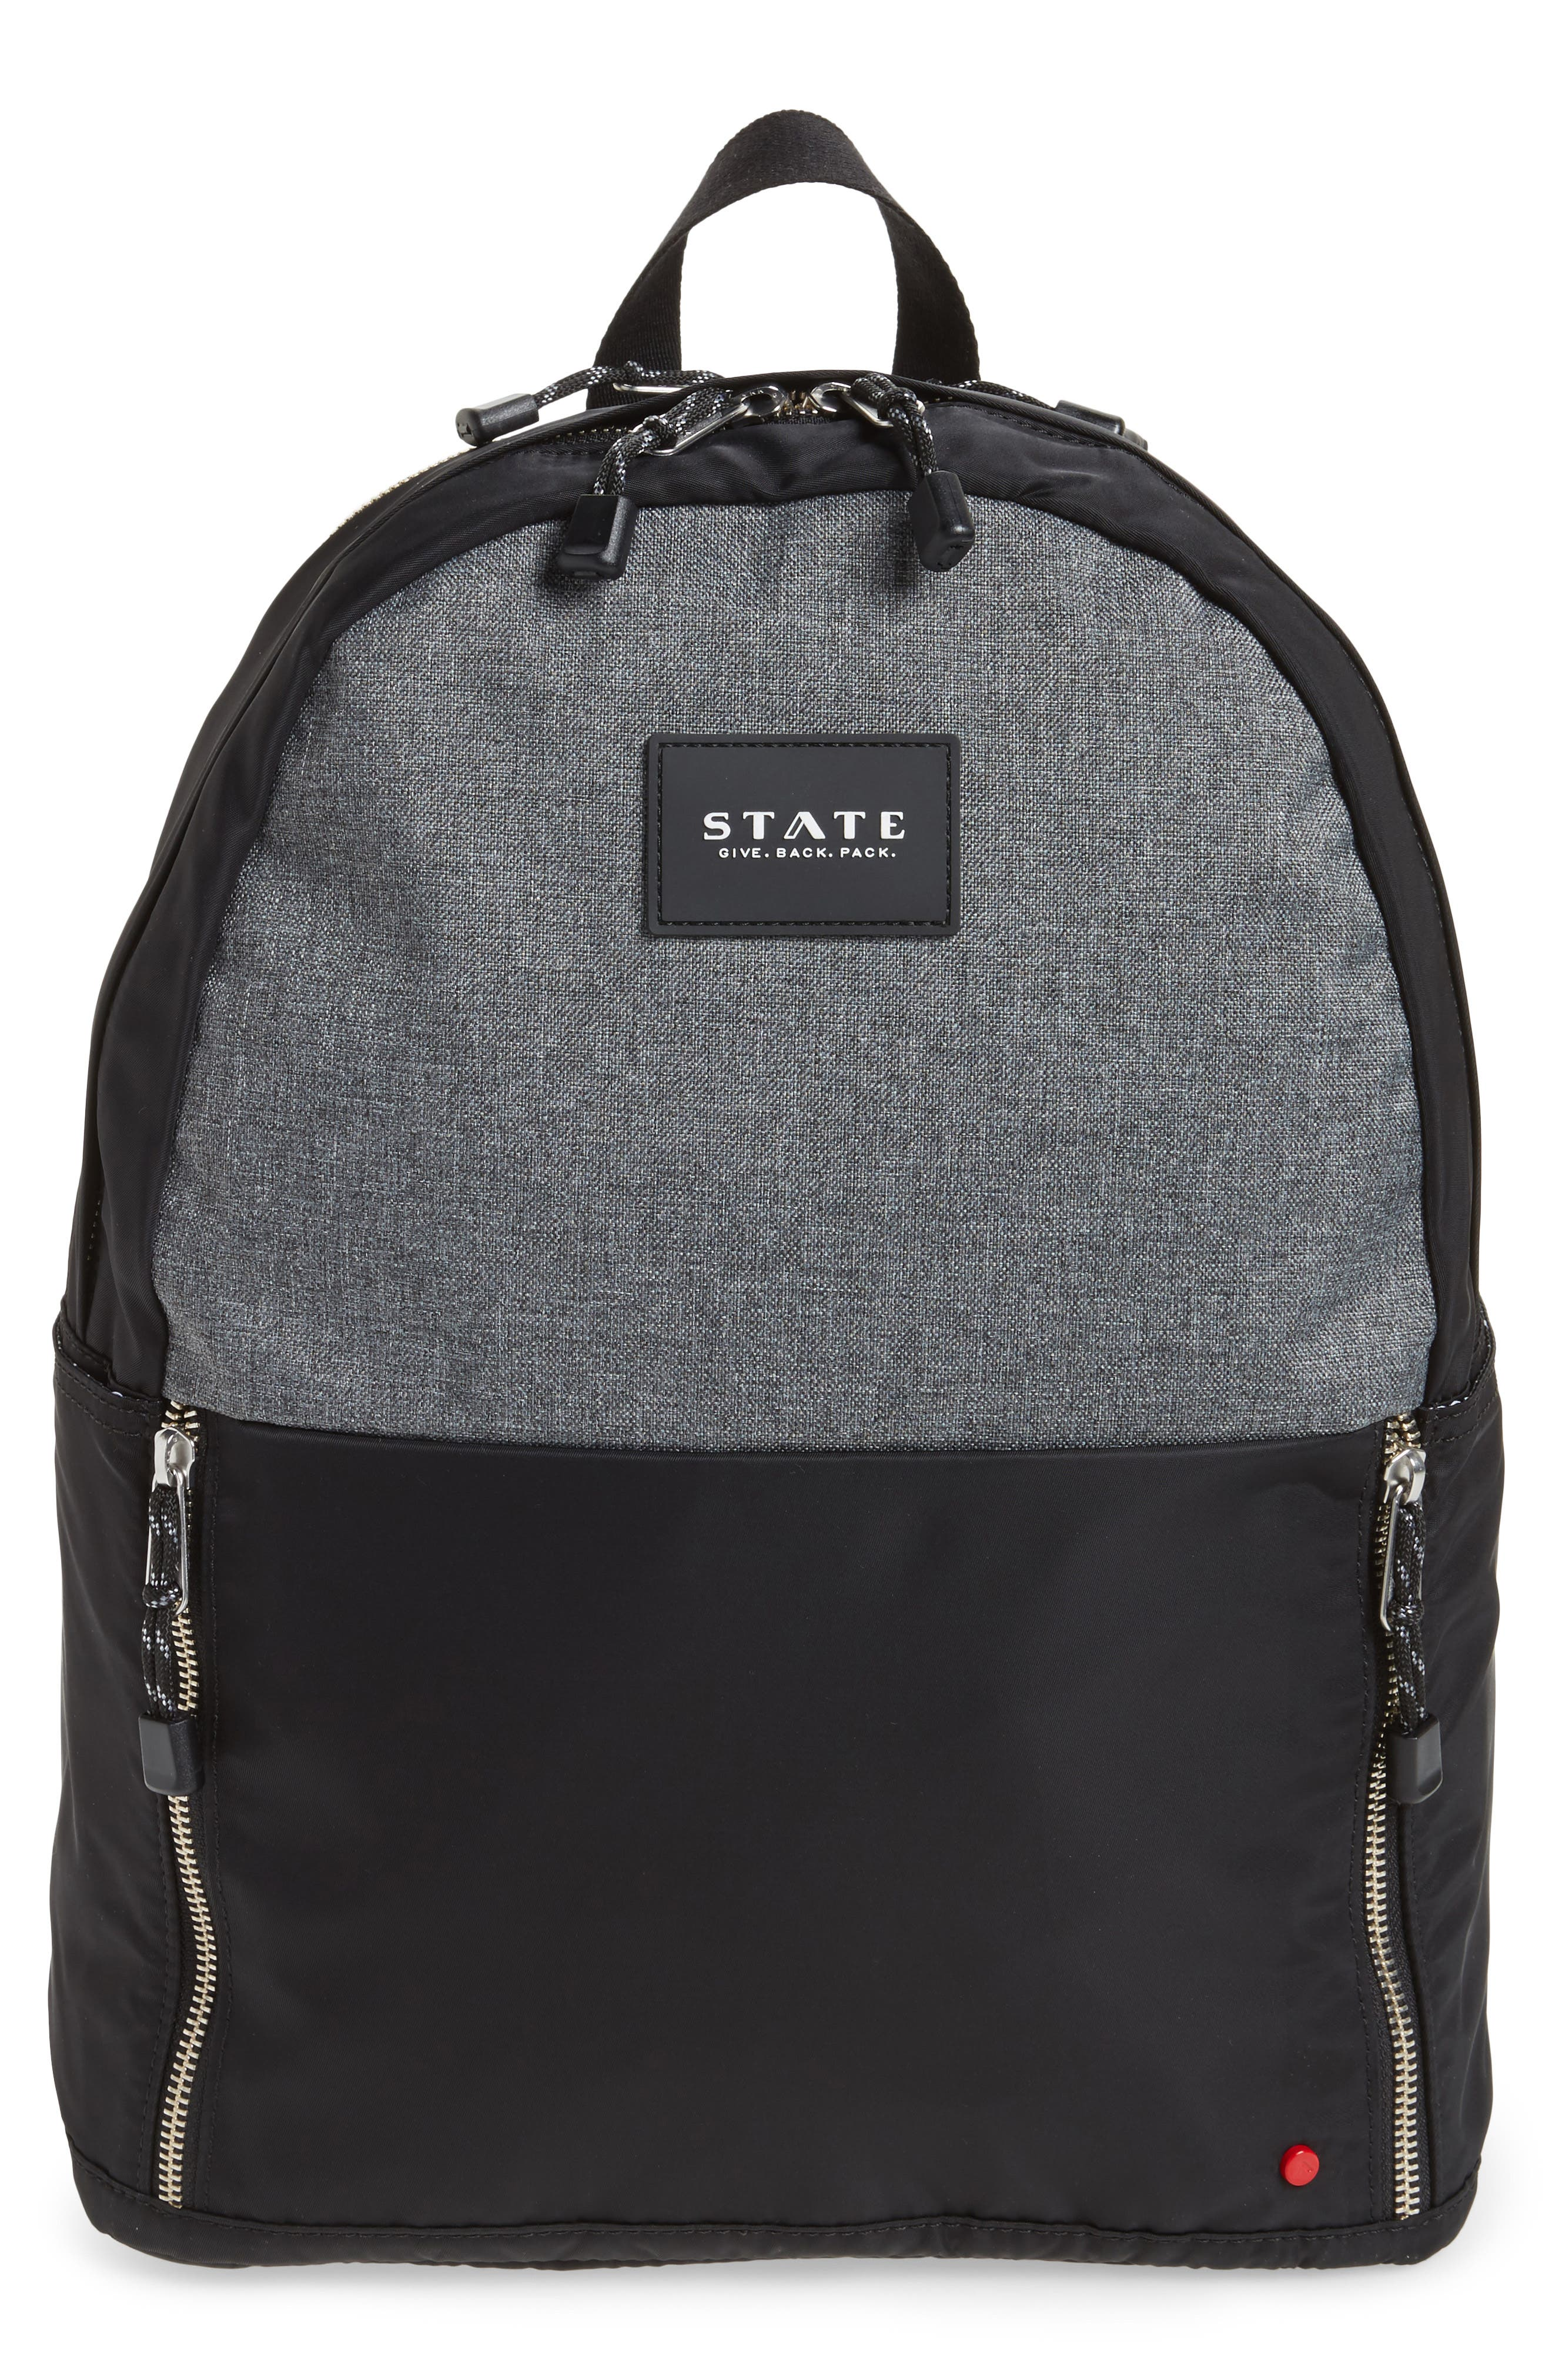 STATE Atlantic Yards Clark Laptop Backpack